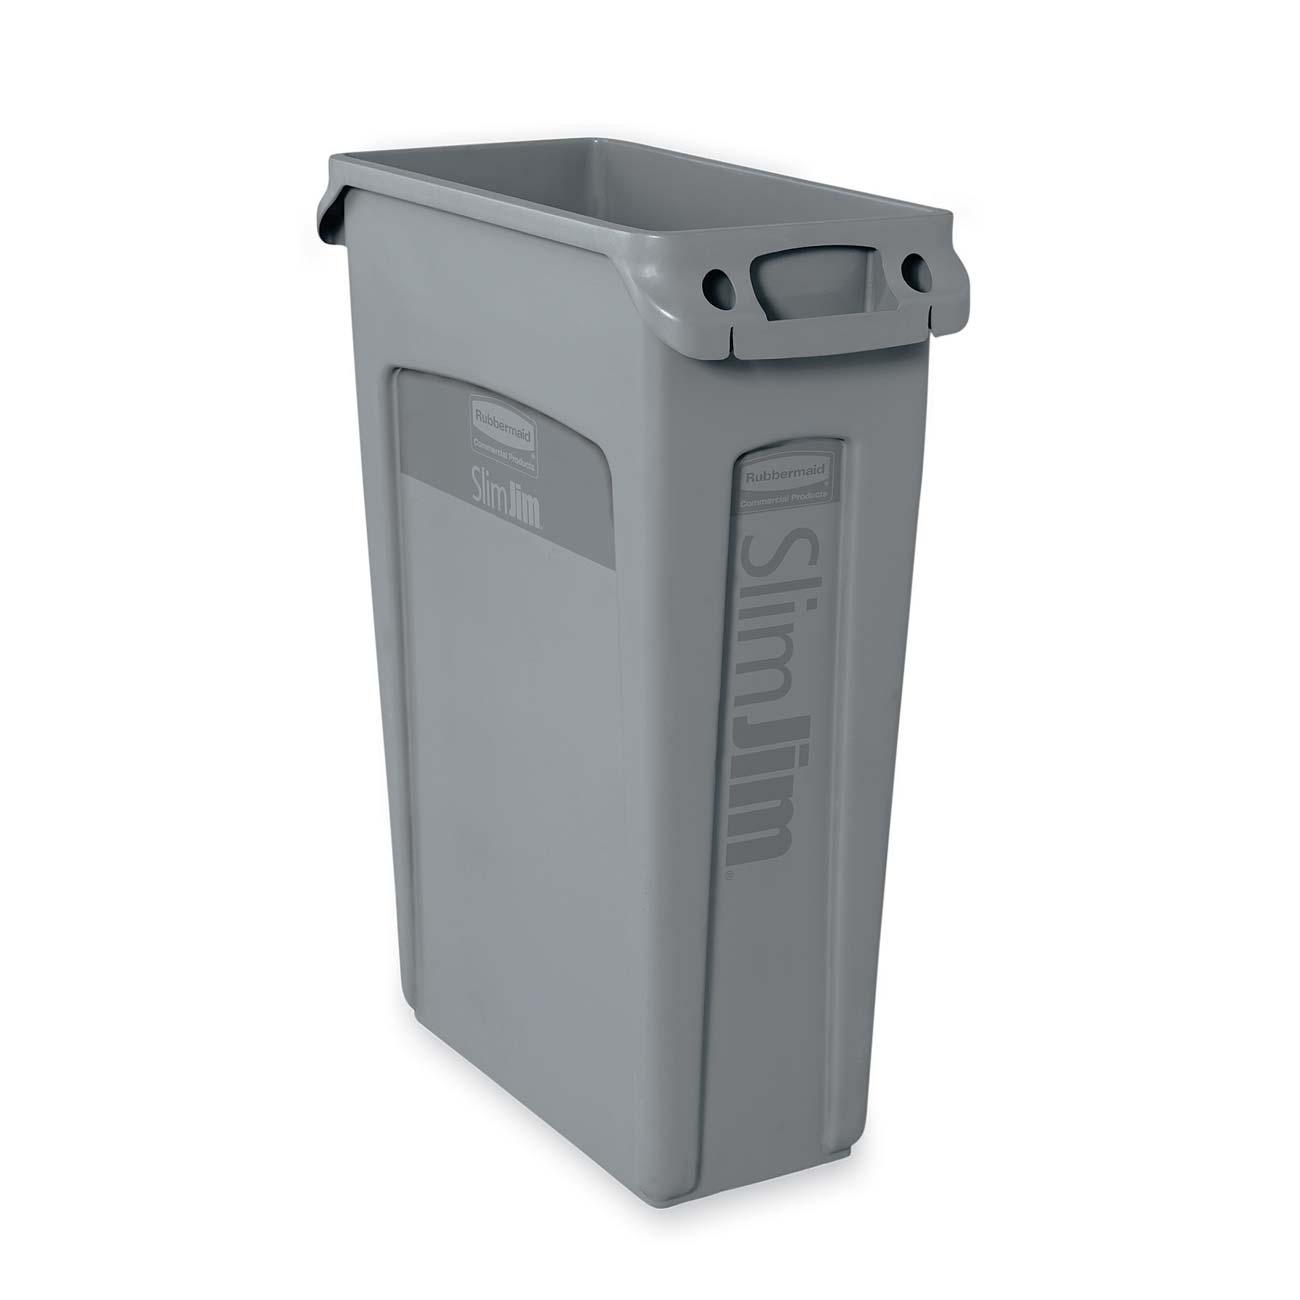 Slim Jim Trash Can With Venting Channels, Gray, 23 Gallons